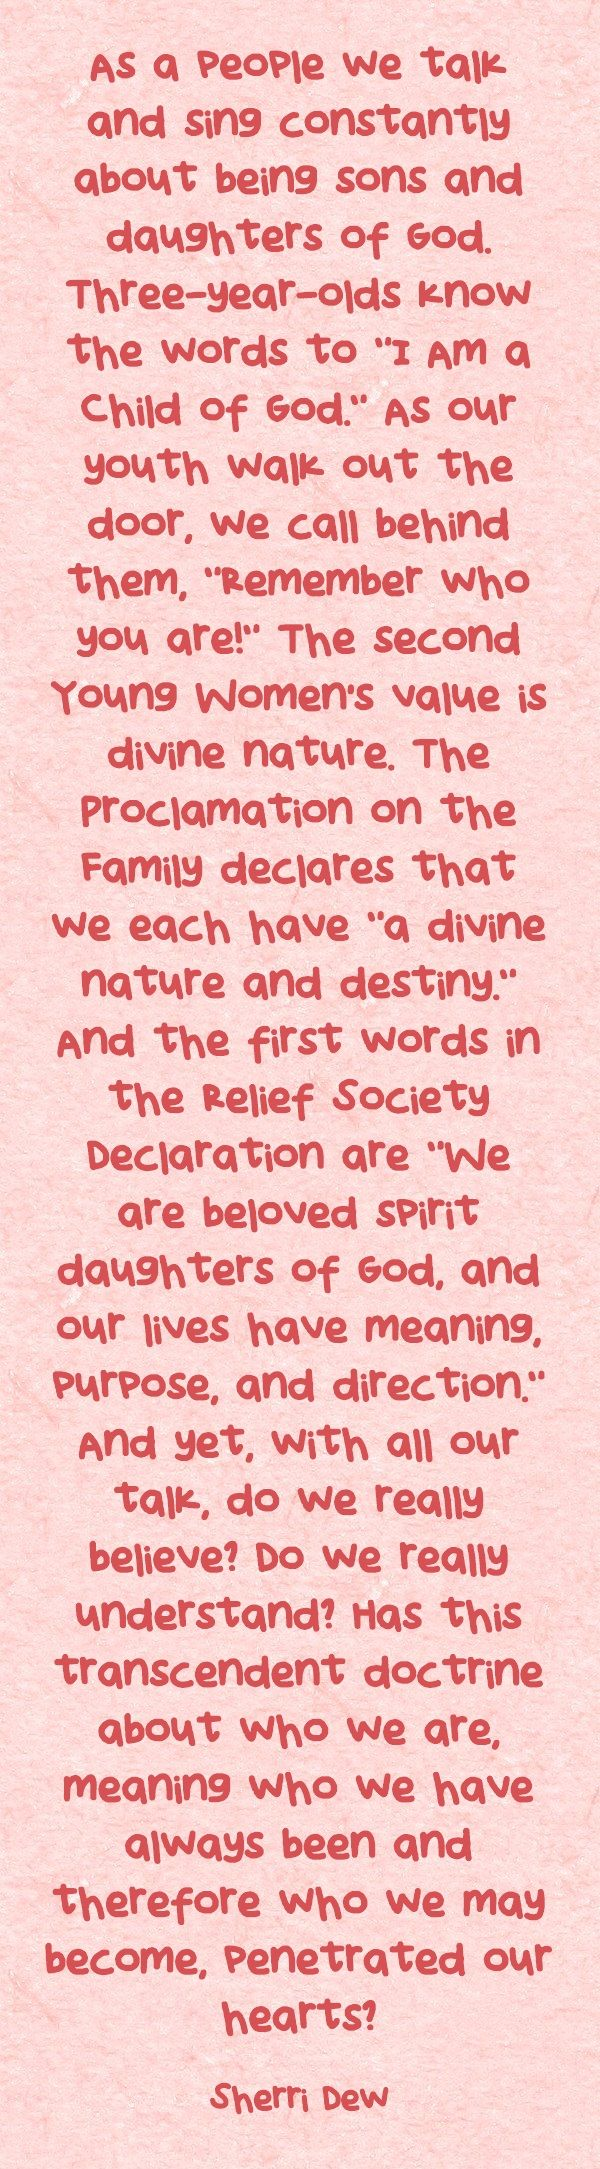 "As a people we talk and sing constantly about being sons and daughters of God. Three-year-olds know the words to ""I Am a Child of God."" As our youth walk out the door, we call behind them, ""Remember who you are!"" The second Young Women's value is divine nature. The Proclamation on the Family declares that we each have ""a divine nature and destiny."" And the first words in the Relief Society Declaration are ""We are beloved spirit daughters of God, and our lives have meaning,..."